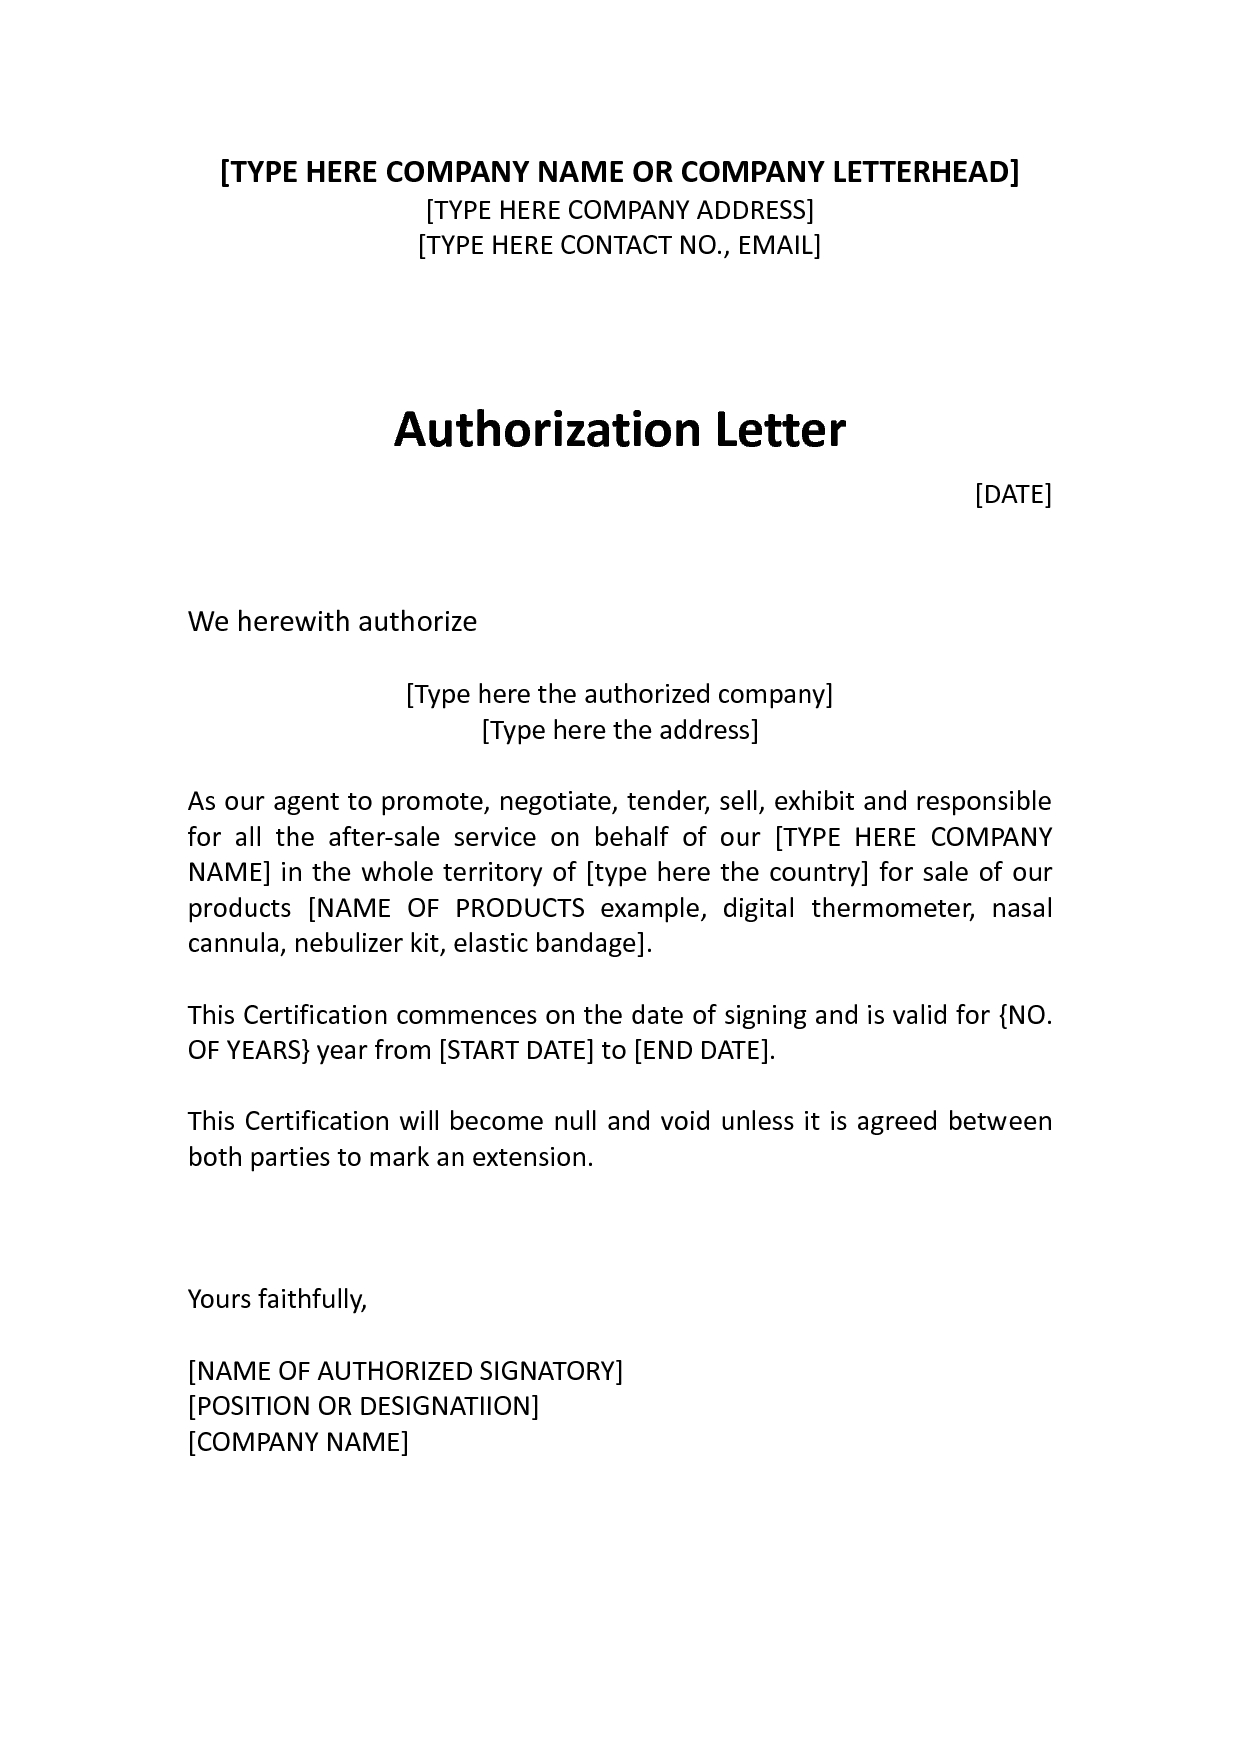 Apartment Offer Letter Template - Authorization Distributor Letter Sample Distributor Dealer